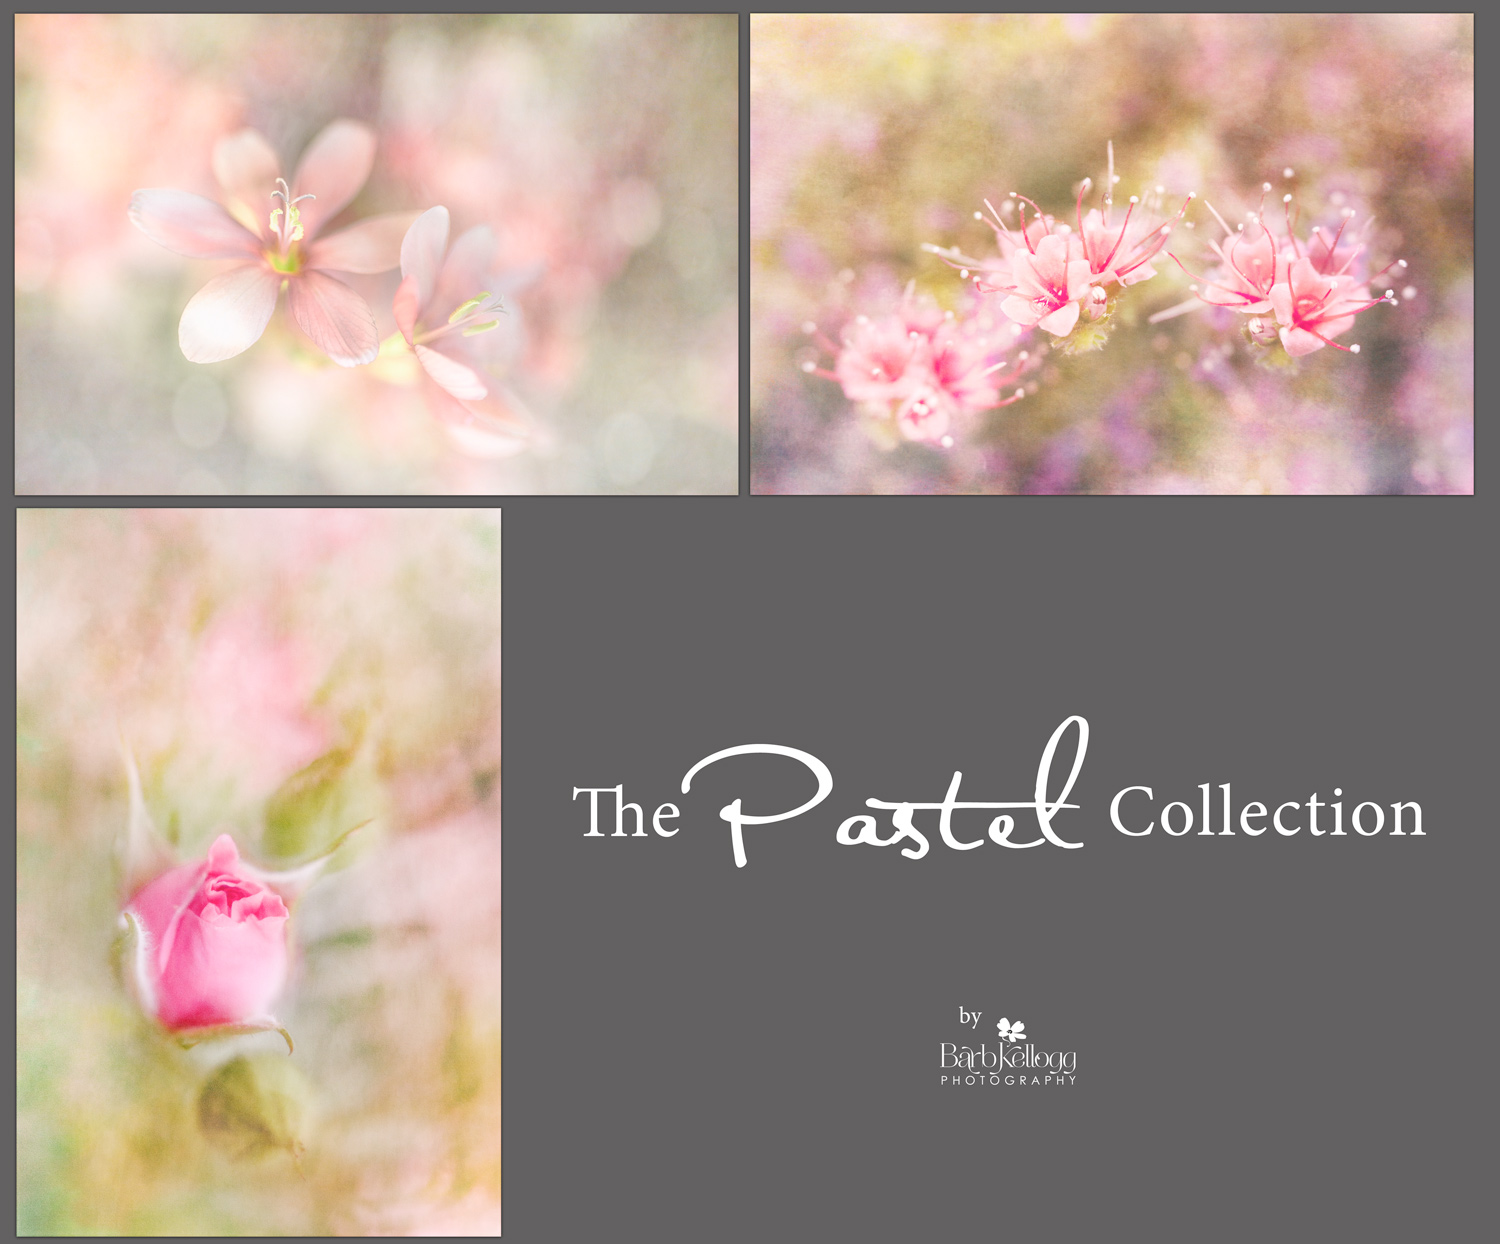 Pastel_Collection_1500px.jpg